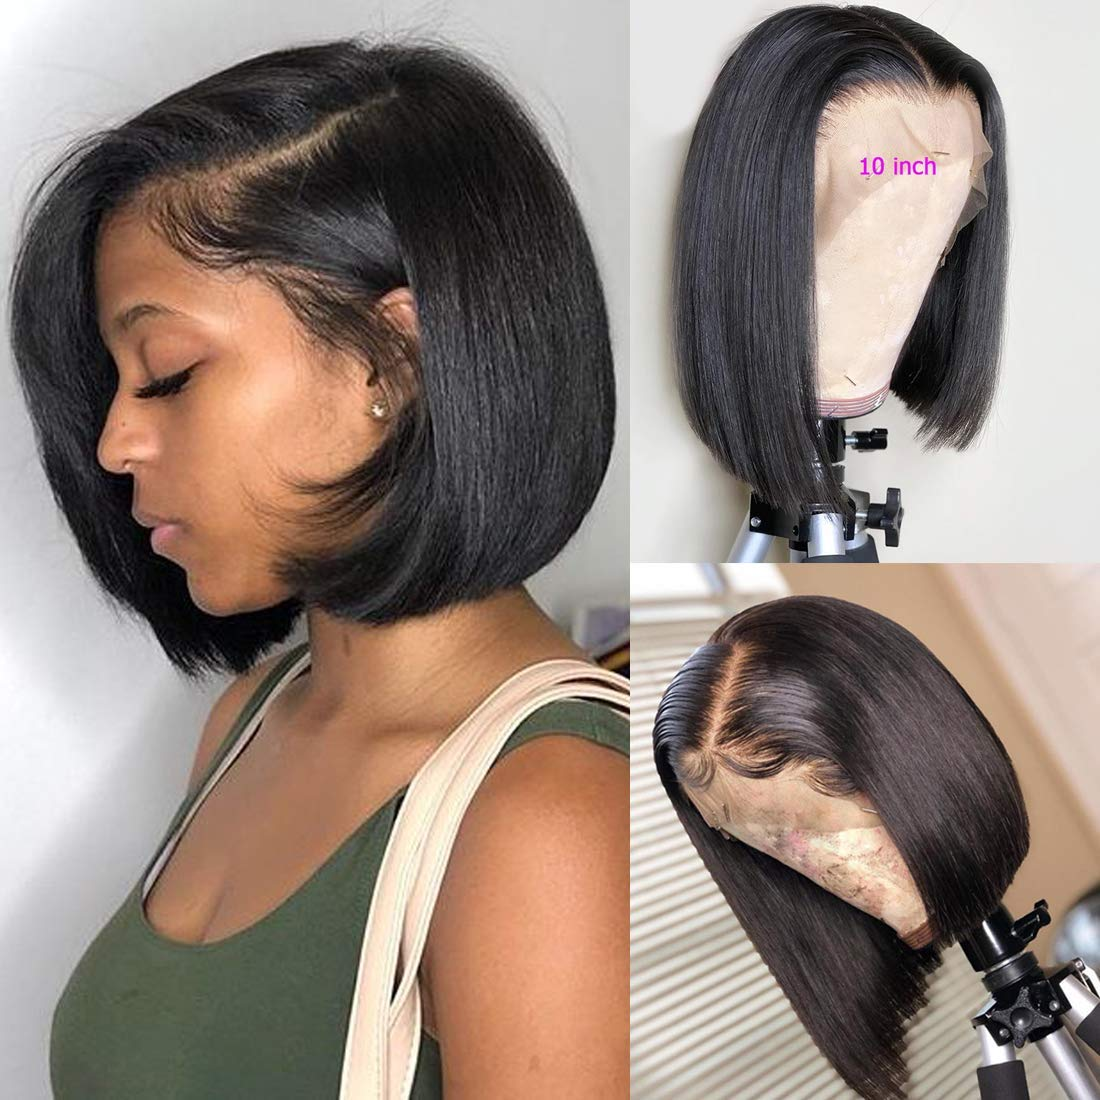 BLY Short Straight Bob Wigs Brazilian Virgin Human Hair Lace Front Wigs Human Hair (10inch) 13x4 Lace Part 150% Density Pre Plucked with Baby Hair by BLY